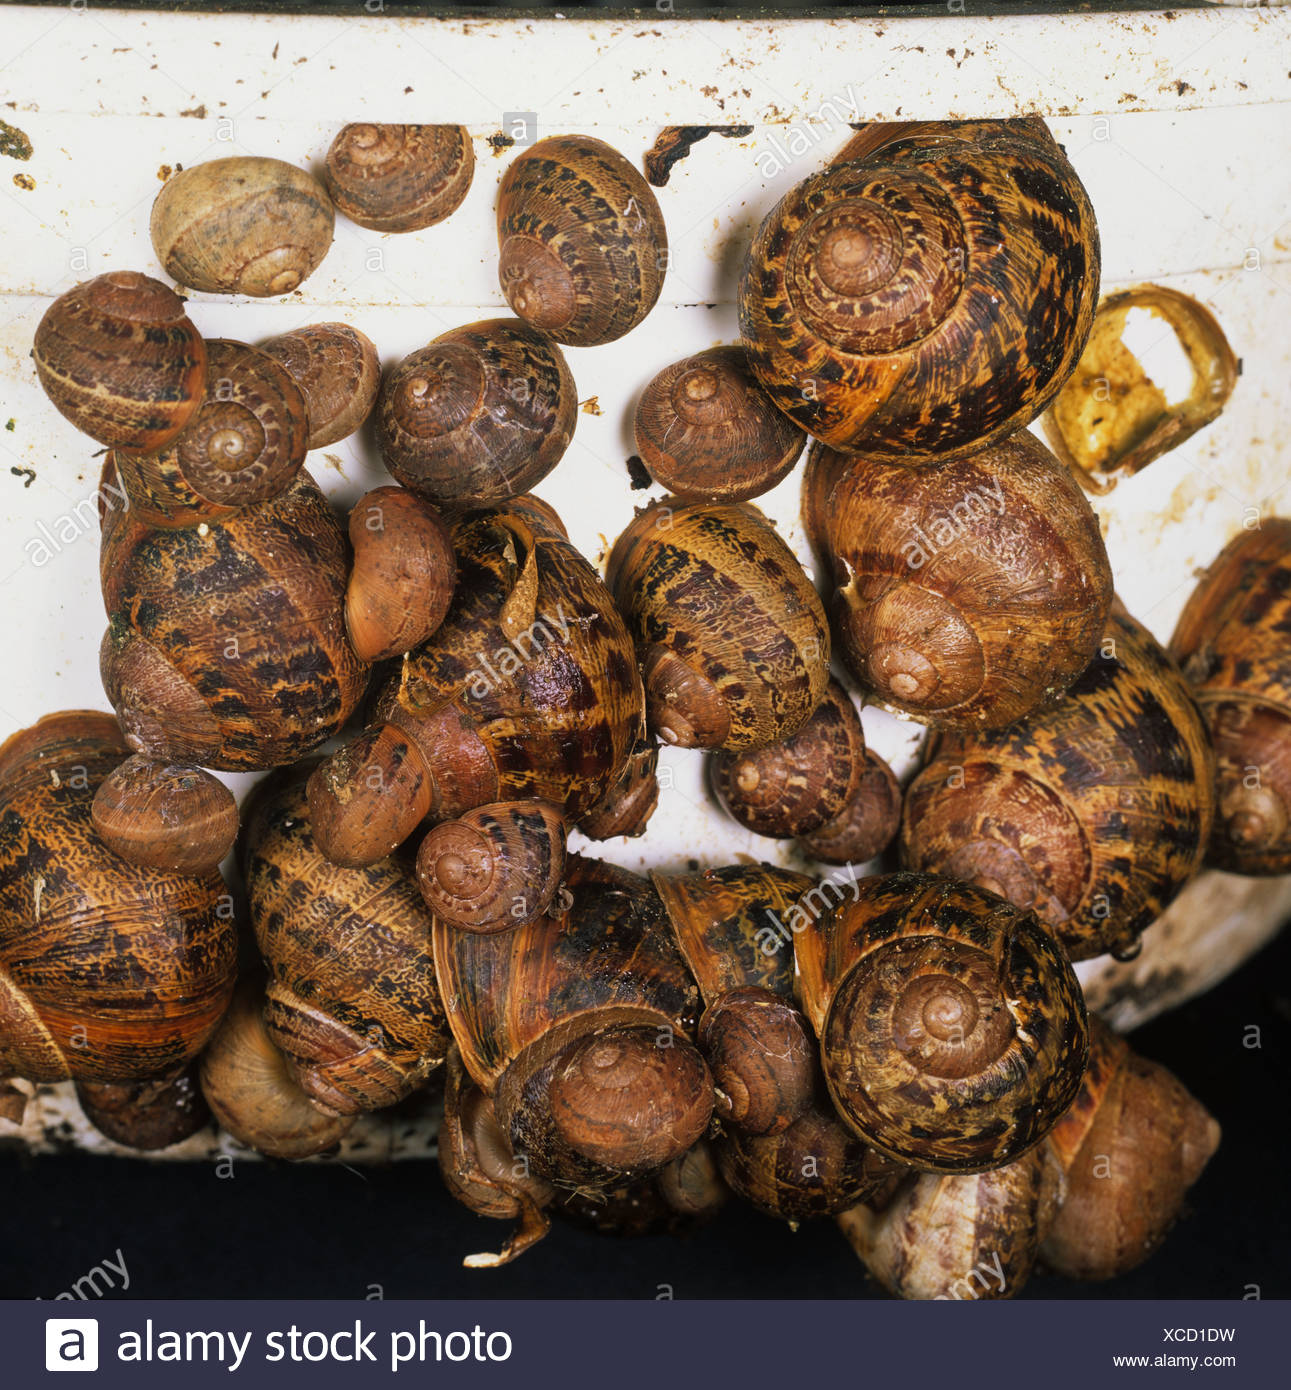 Garden snails Cornu aspersum of varying size hibernating in